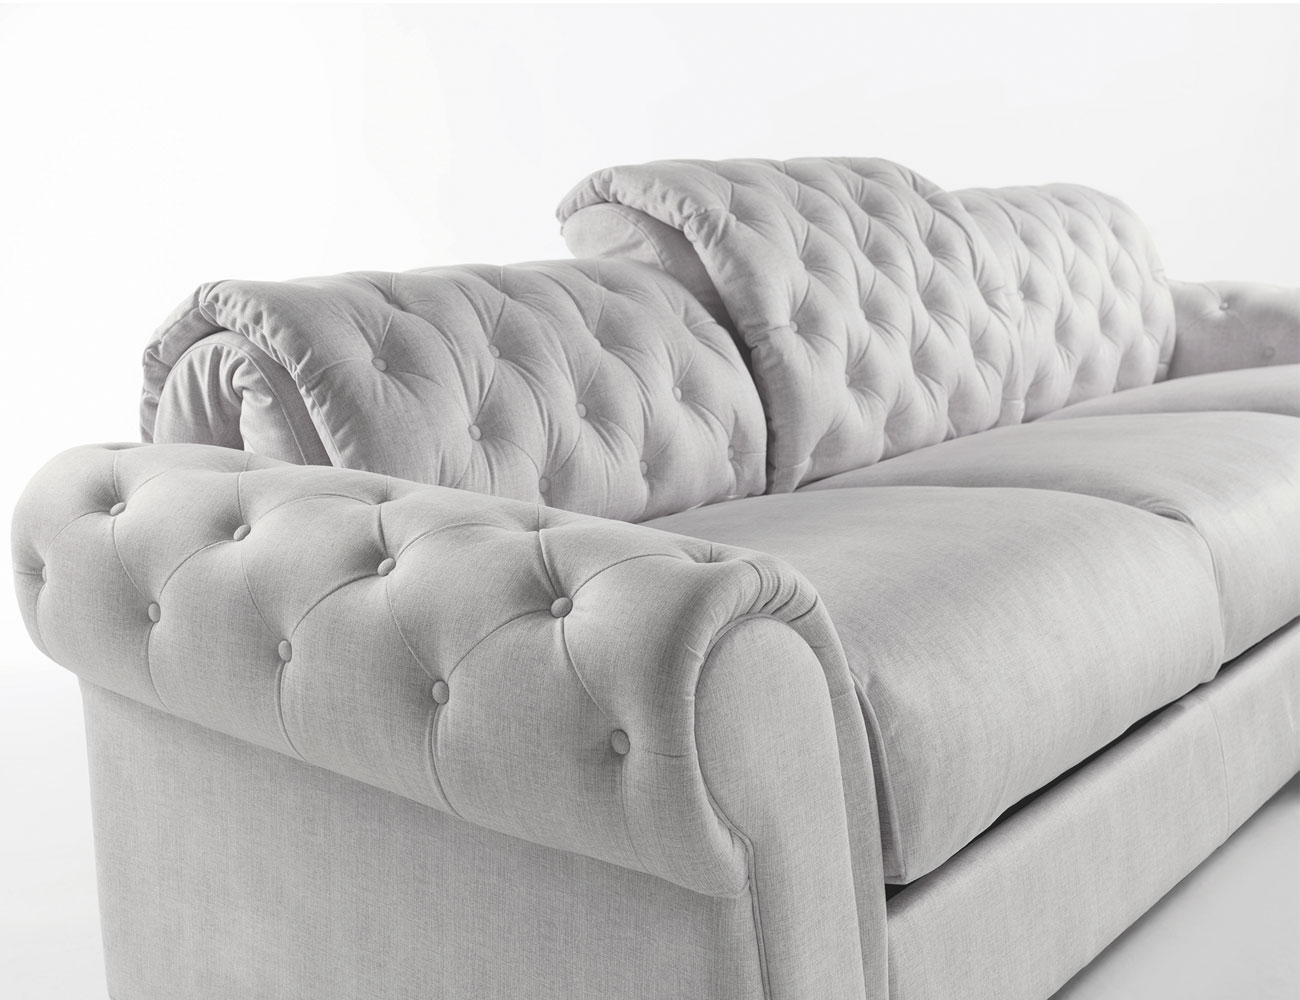 Sofa chaiselongue gran lujo decorativo capitone blanco tela 15